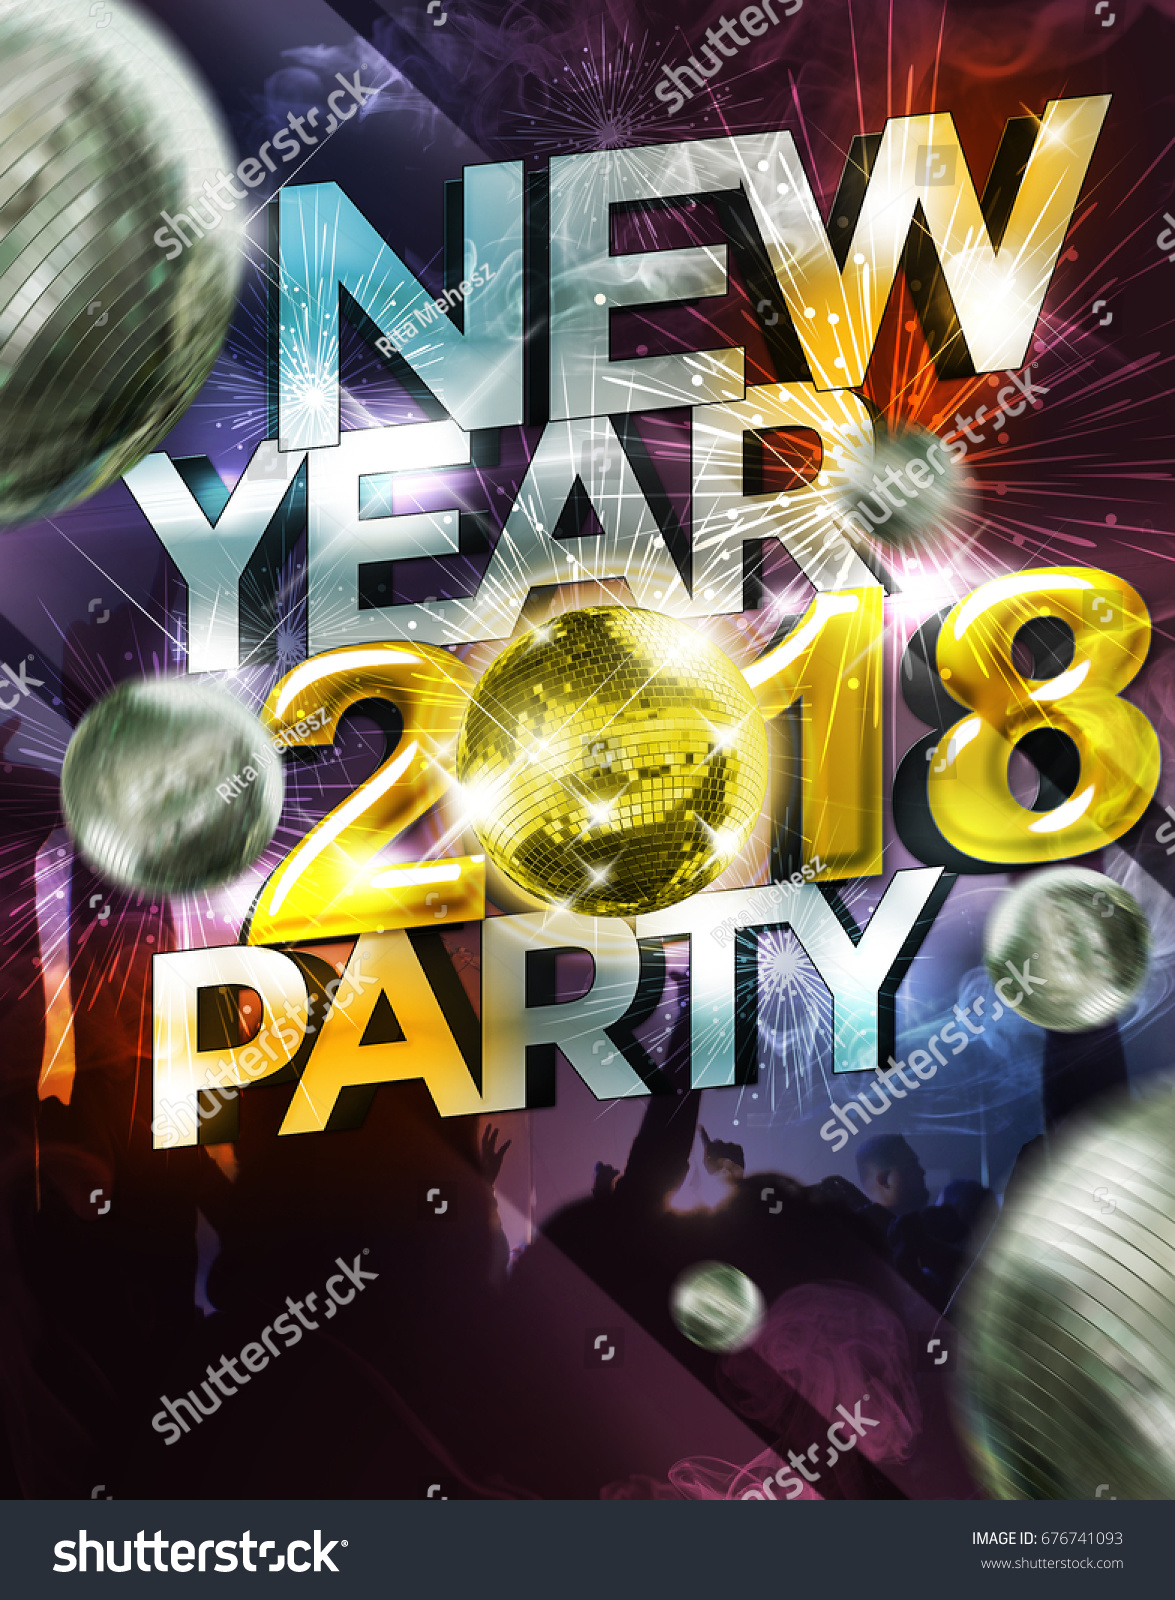 Invitation sample for new year party picture ideas references invitation sample for new year party sample invitation card new year party flyer template invitation happy stopboris Gallery